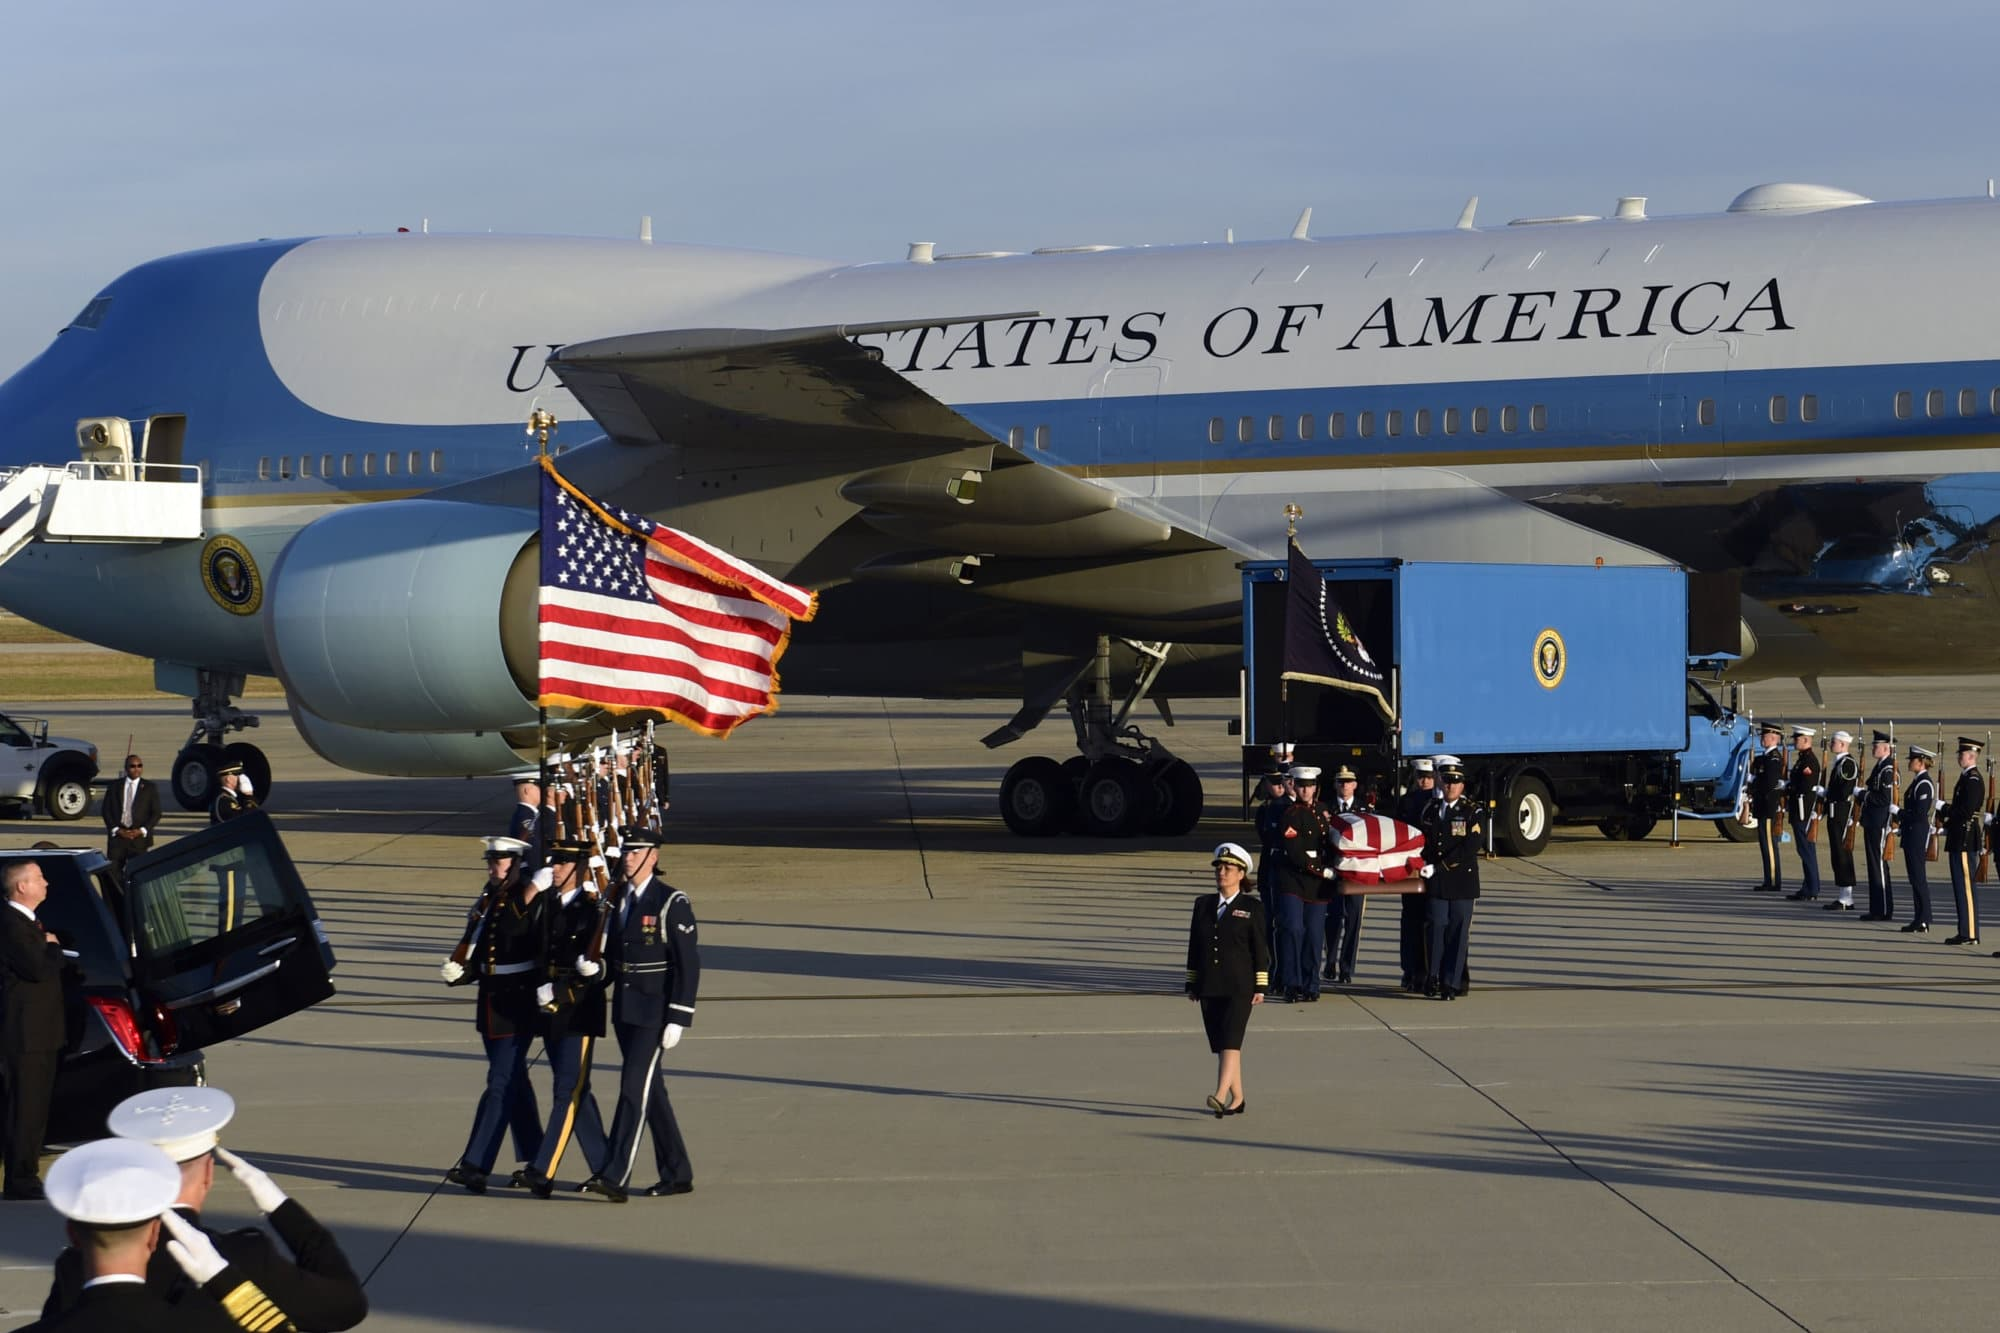 The flag-draped casket of former President George H.W. Bush is carried by a joint services military honor guard during an arrival ceremony Monday, Dec. 3, 2018, at Andrews Air Force Base, Md. (AP Photo/Susan Walsh)